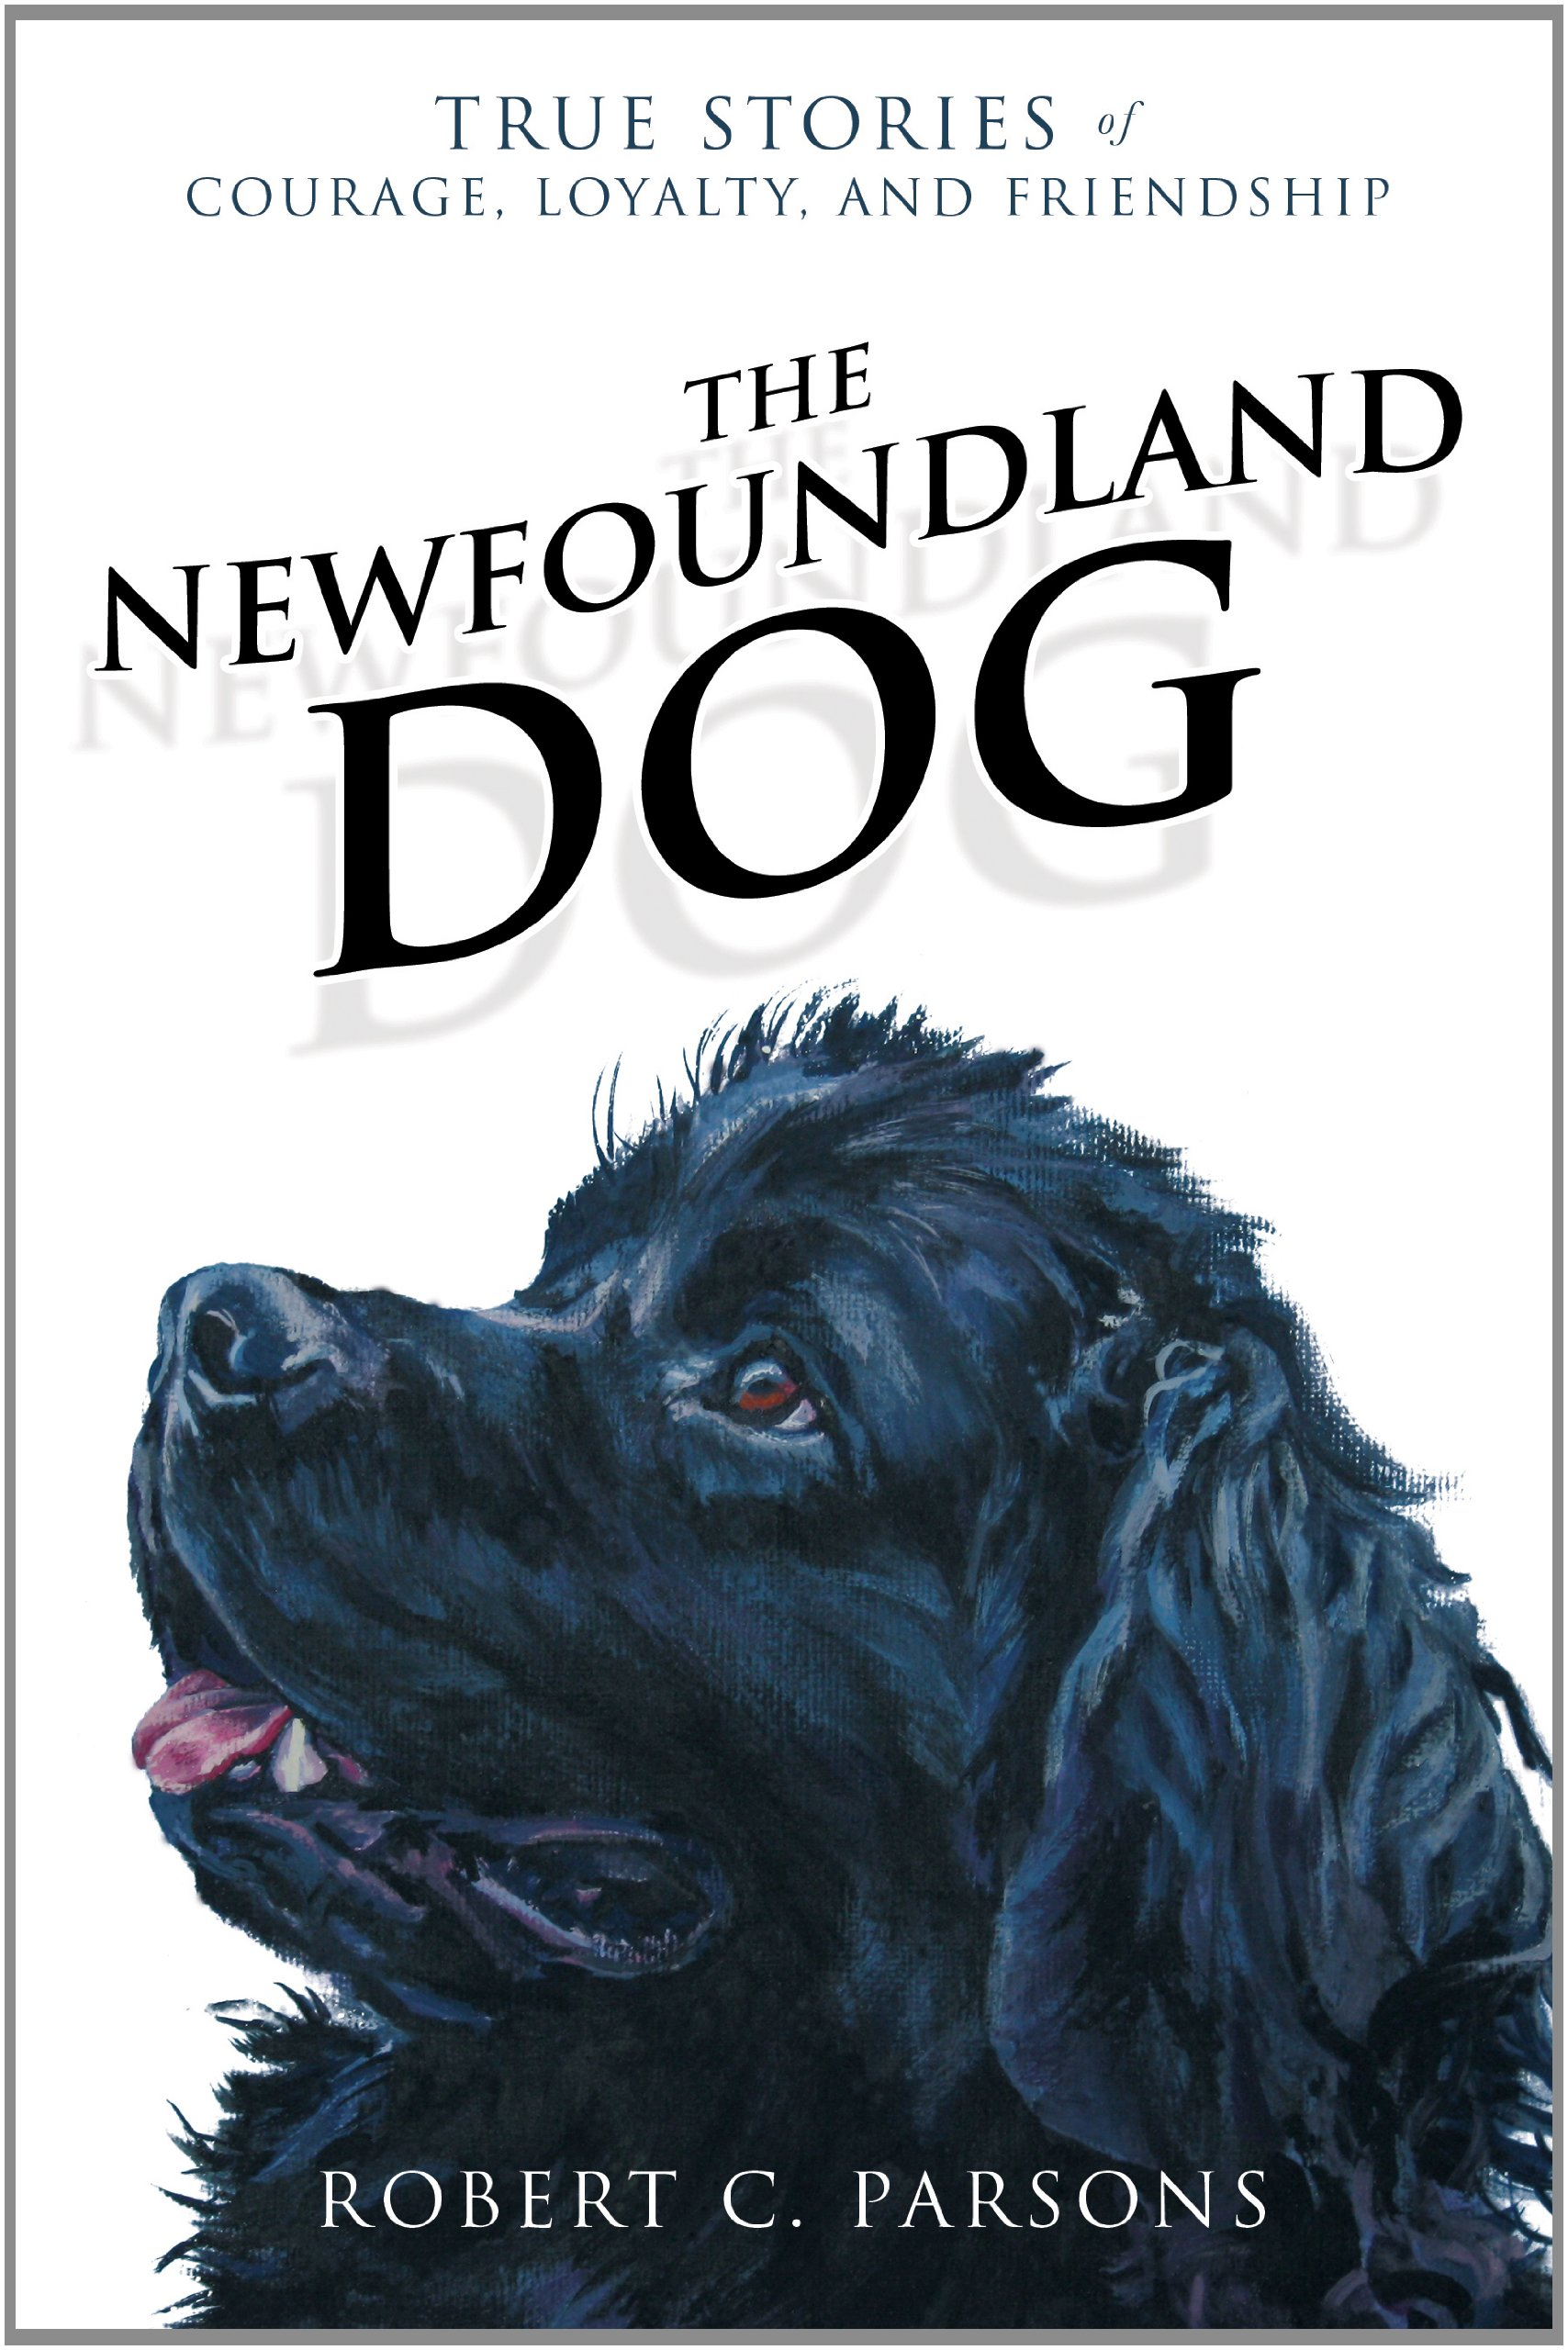 The Newfoundland Dog: True Stories of Courage, Loyalty, and Friendship